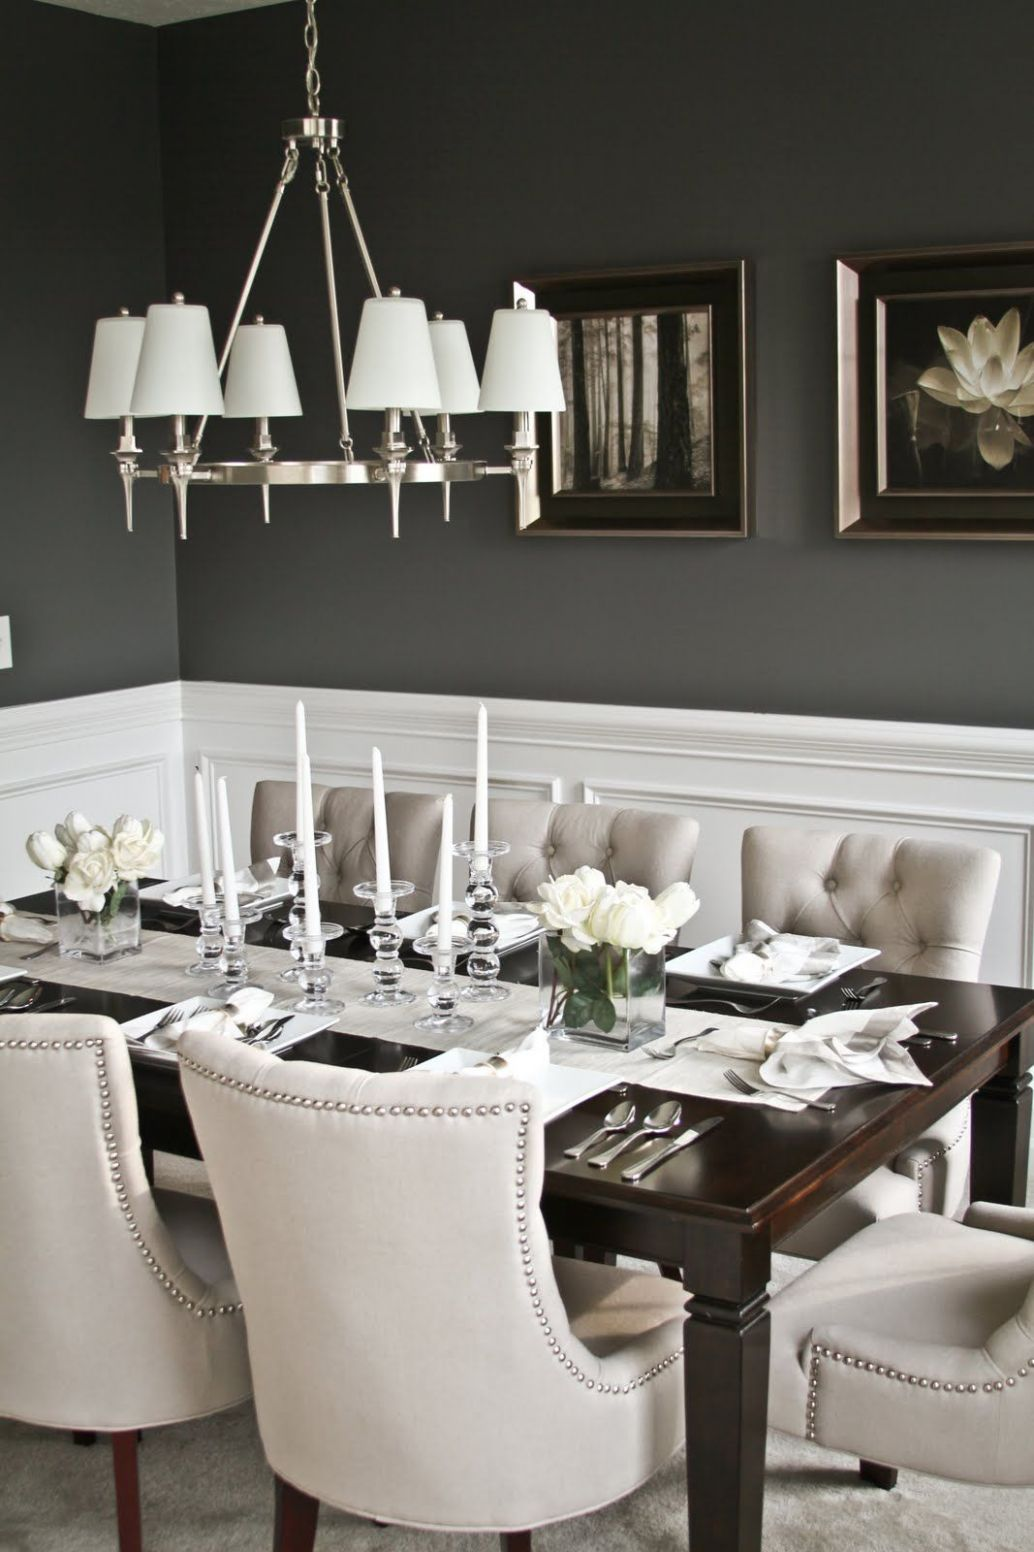 8 Wainscoting Ideas With Pros And Cons | Elegant dining room ..